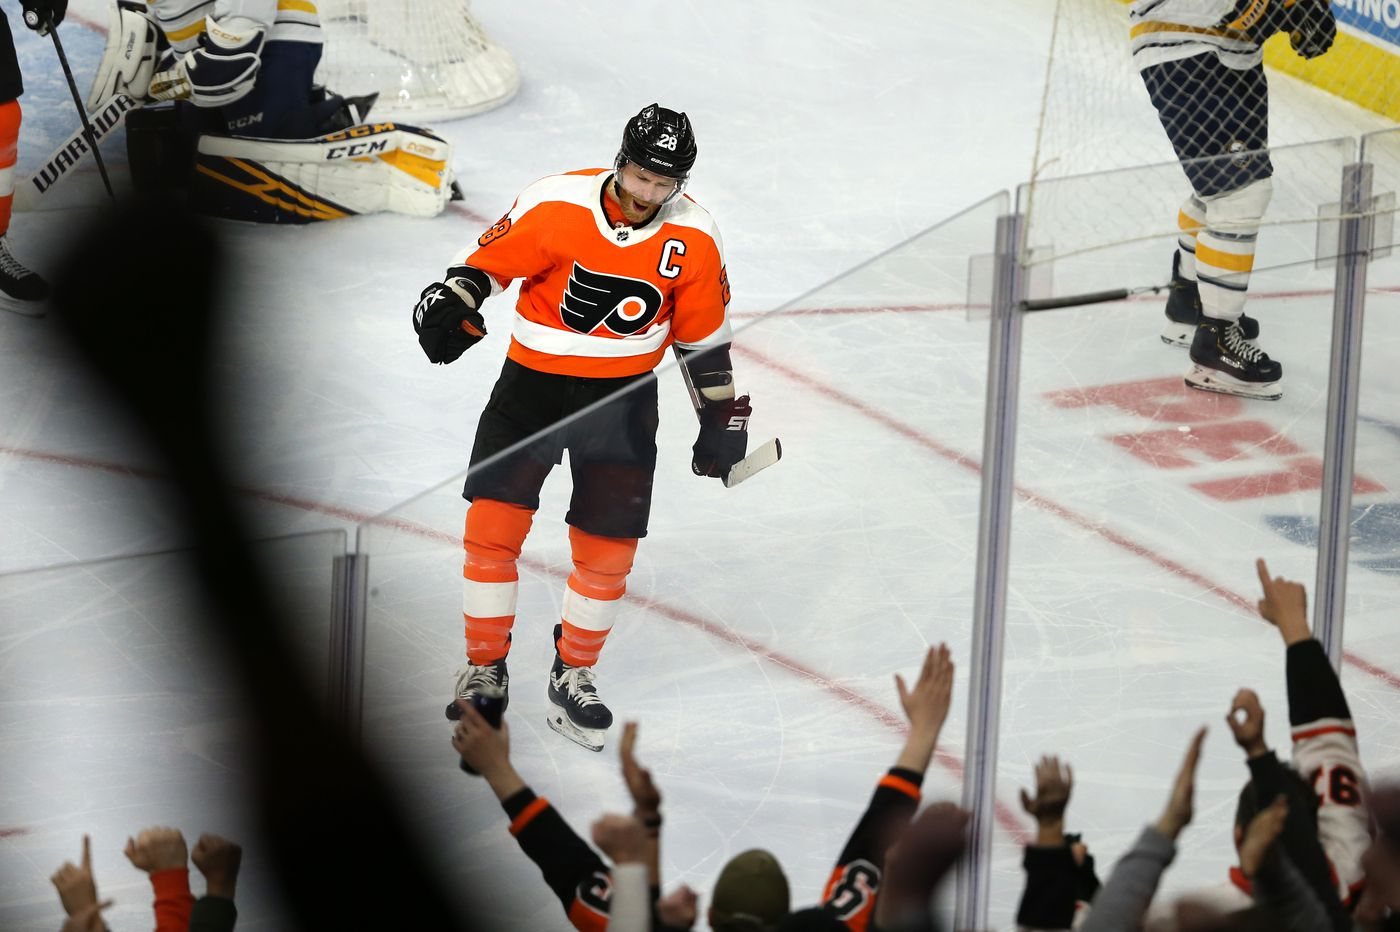 Given the Flyers' tortured history, this would be the perfect year for them to win the Stanley Cup | Mike Sielski